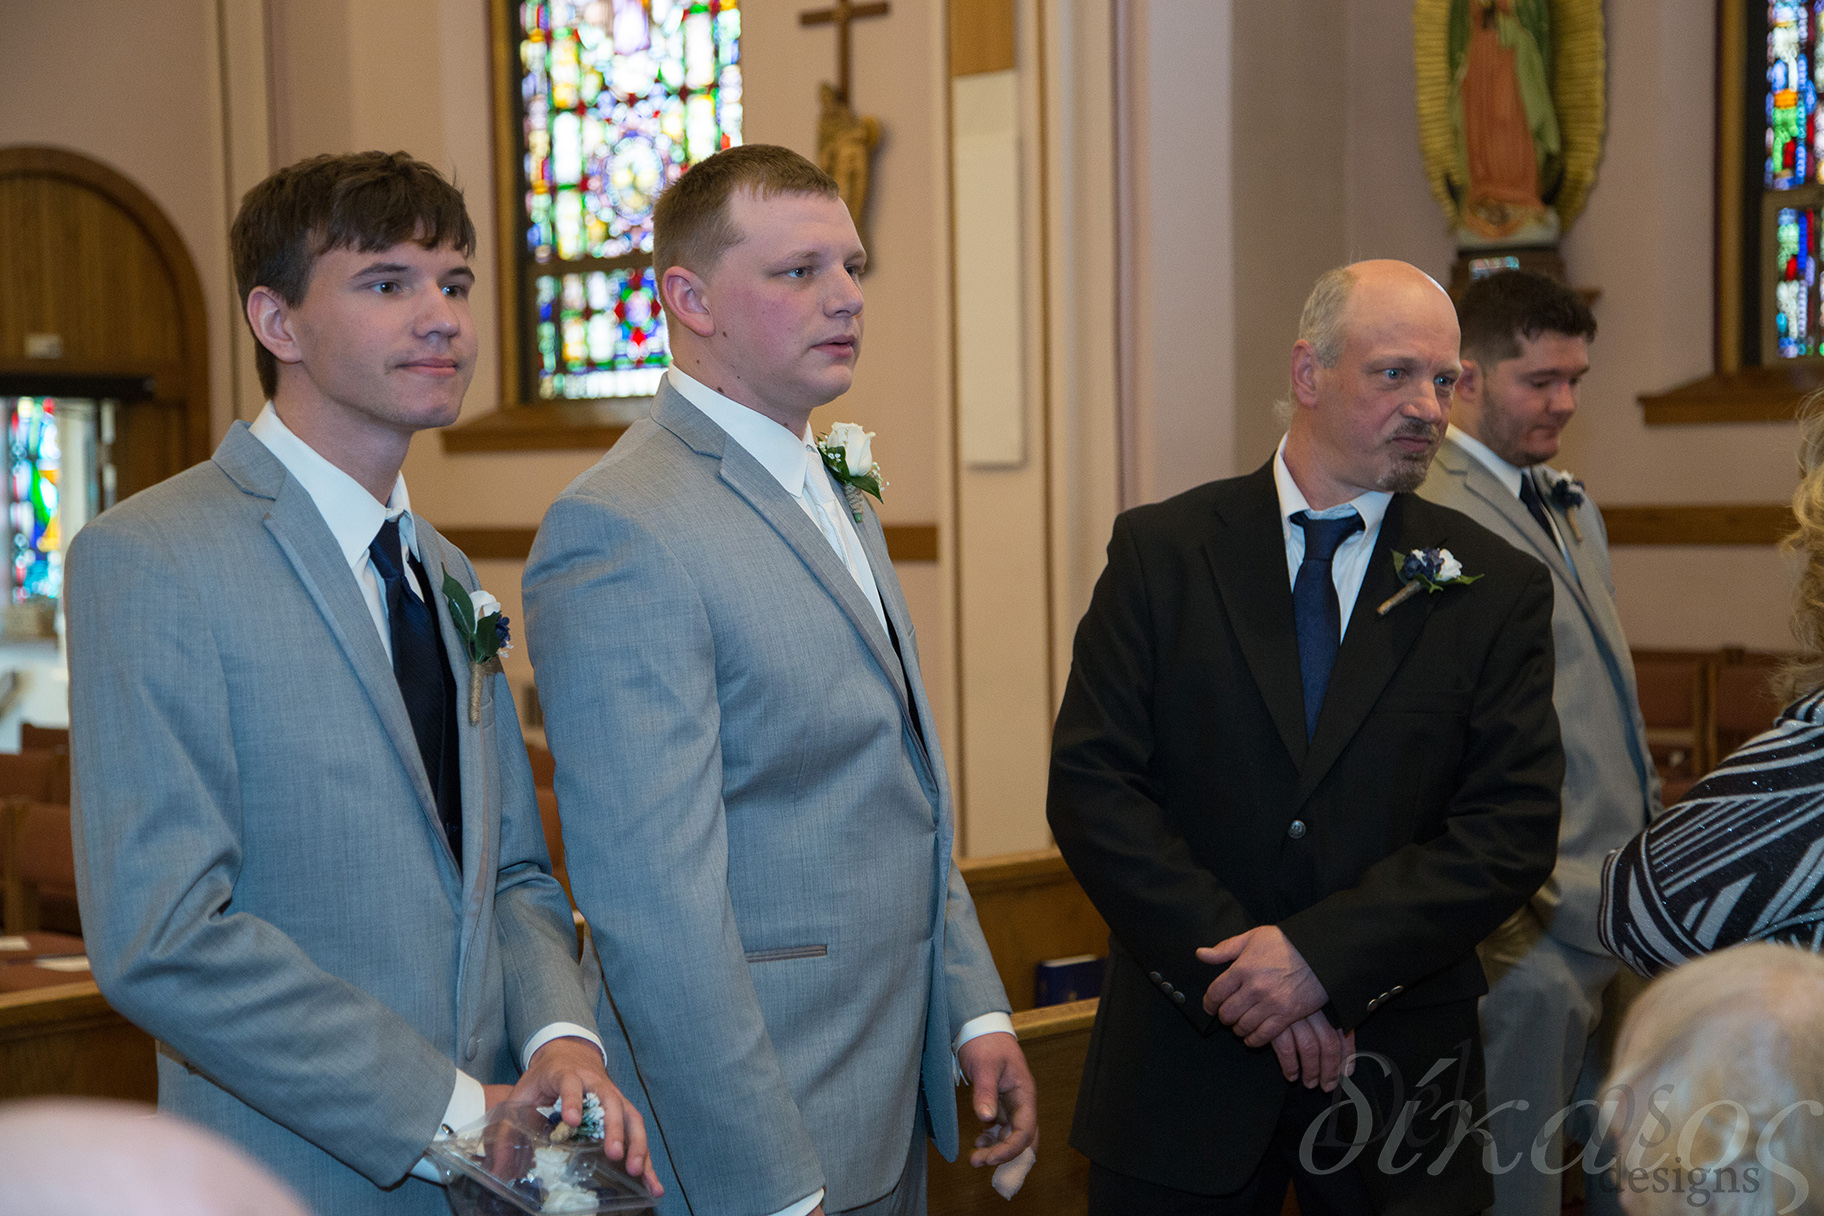 Jake in the middle, his brother, and father.